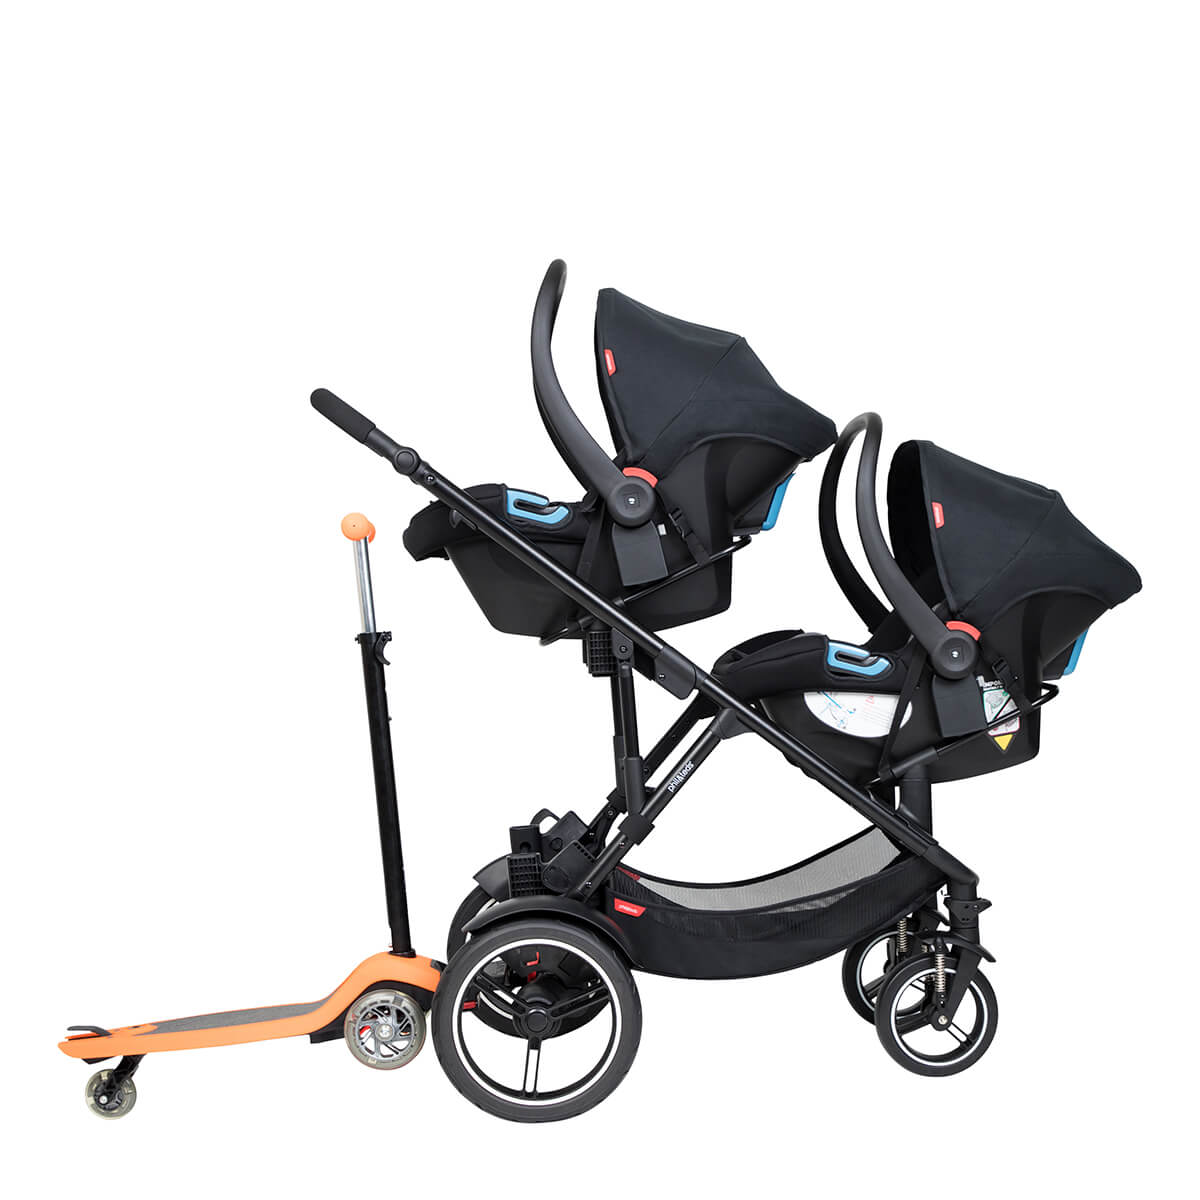 https://cdn.accentuate.io/4509867147361/19794908643498/philteds-voyager-buggy-with-double-travel-systems-and-freerider-stroller-board-in-the-rear-v1626485373275.jpg?1200x1200